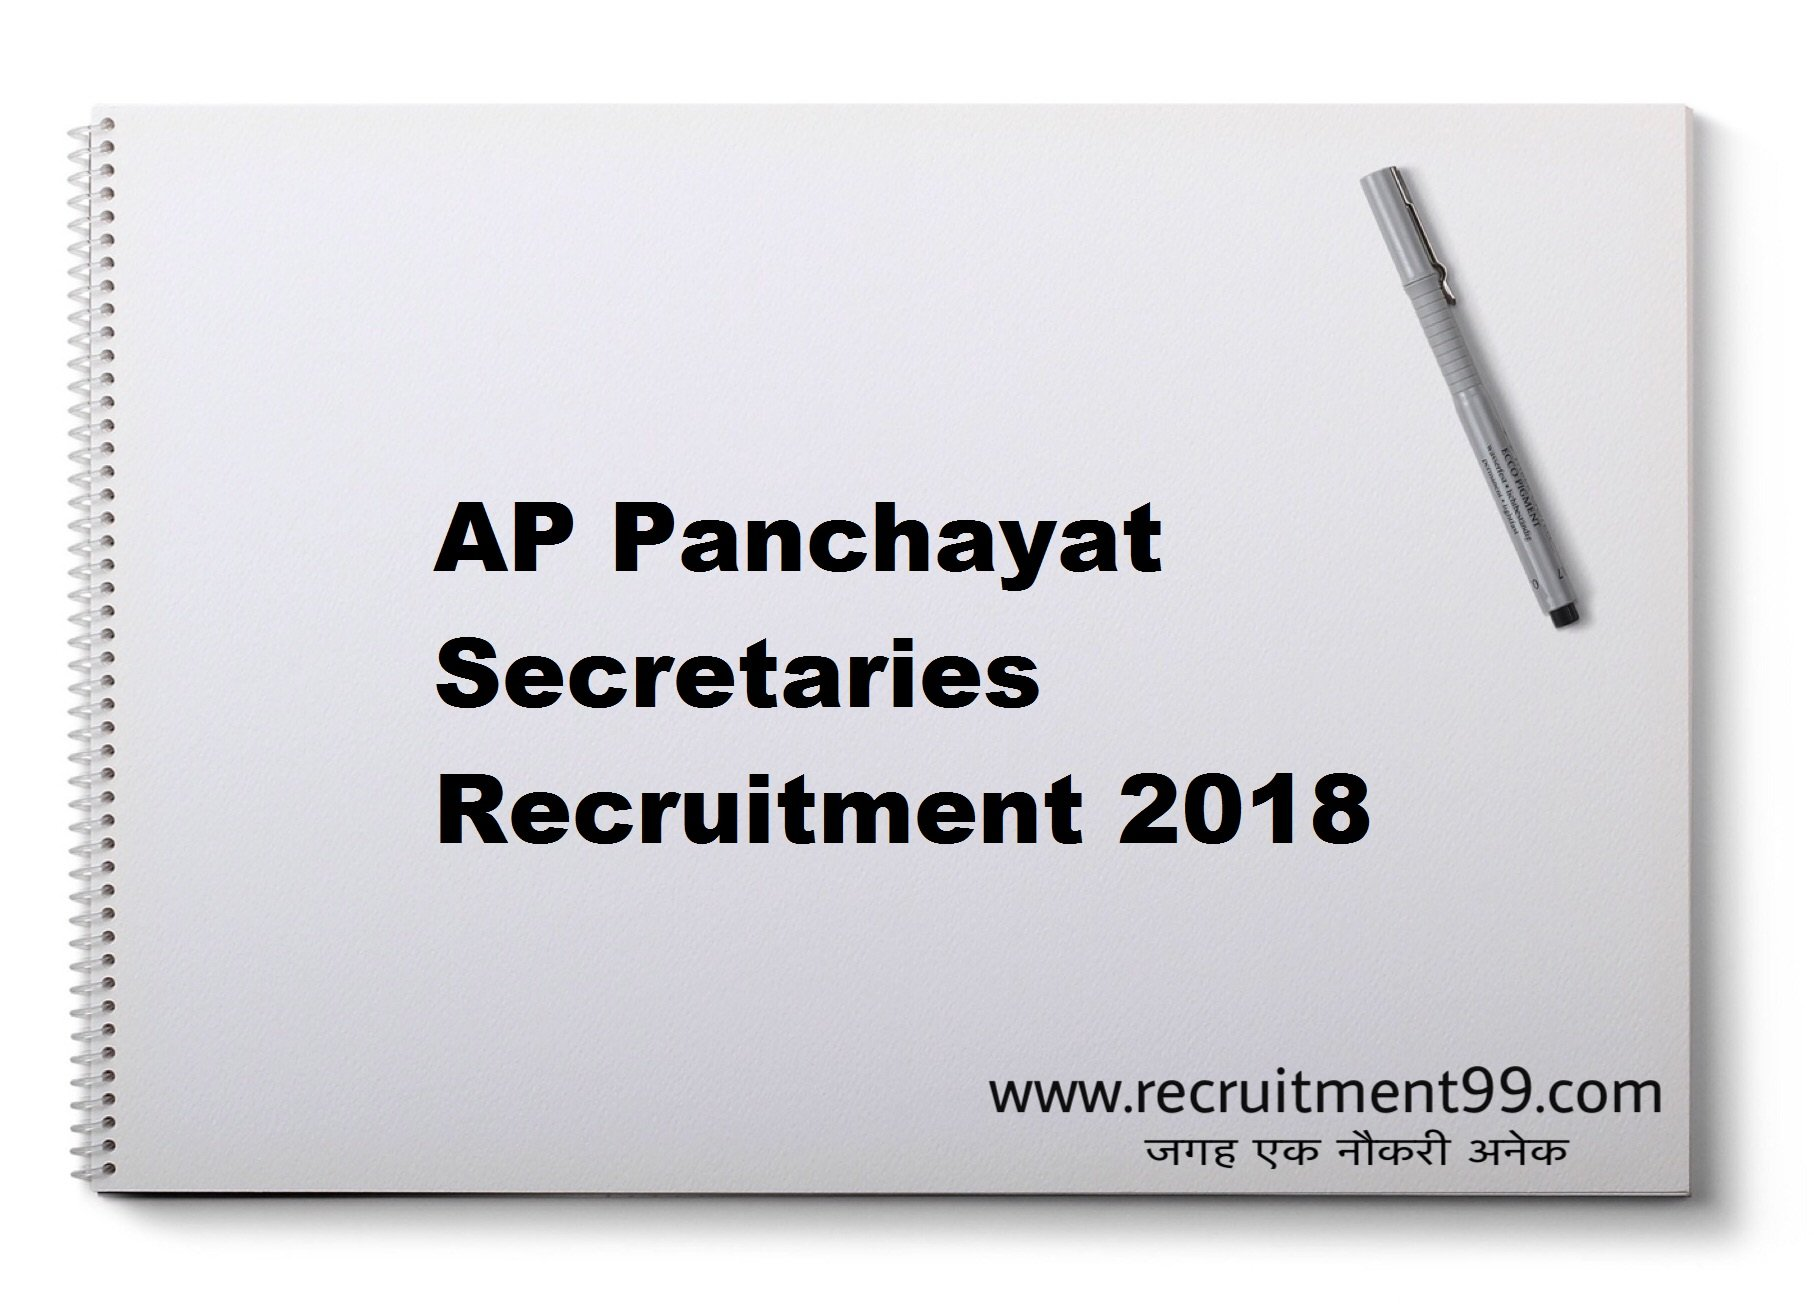 AP Panchayat Secretaries Recruitment Admit Card Result 2018